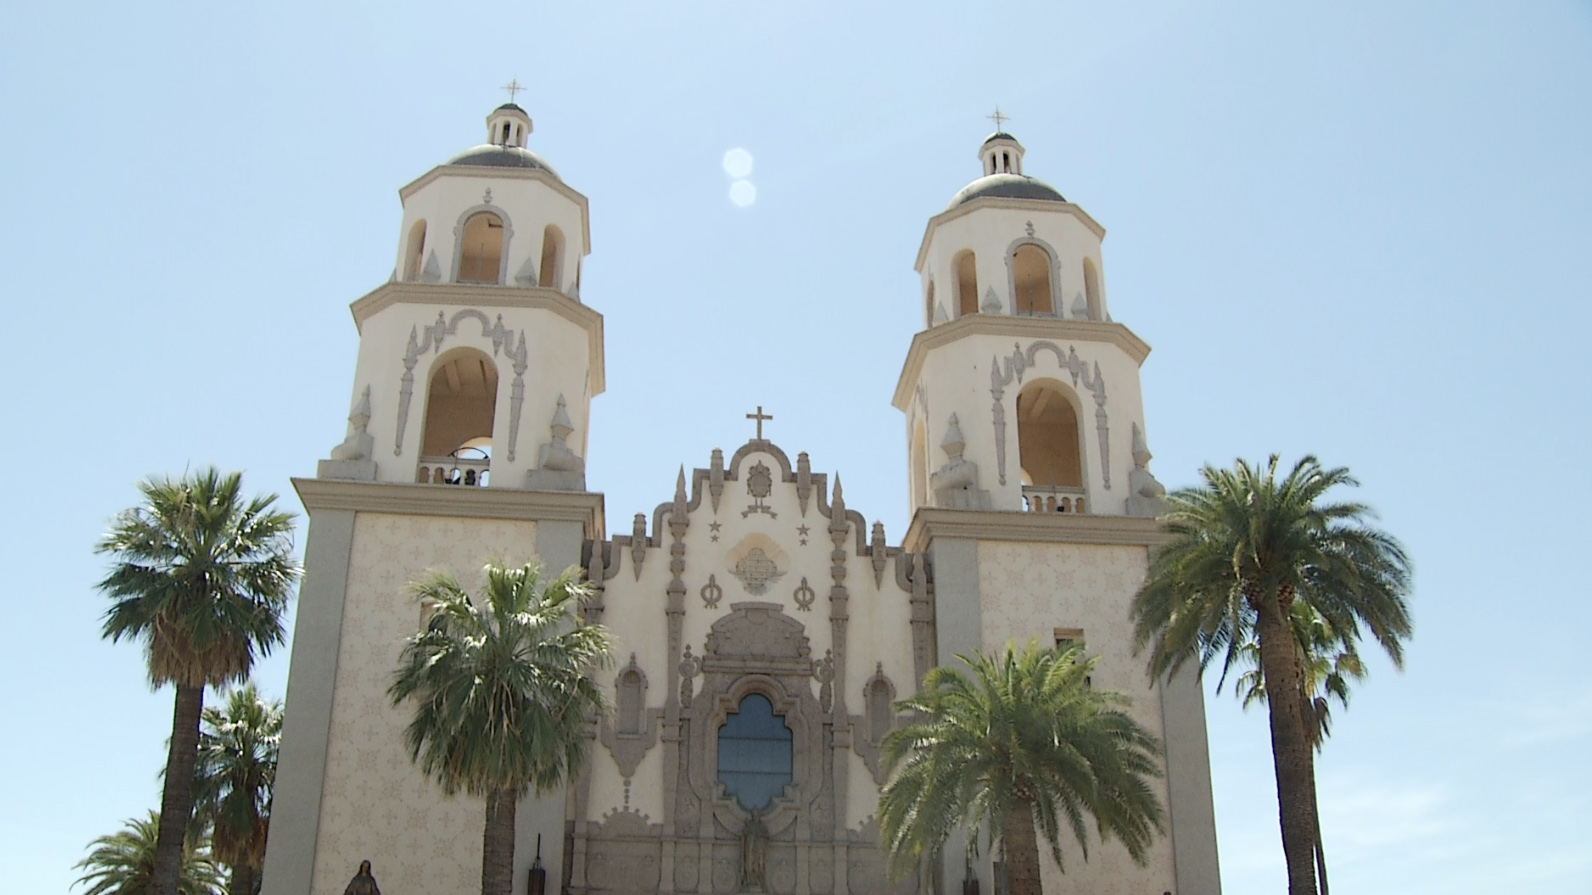 St. Augustine's Cathedral in downtown Tucson.